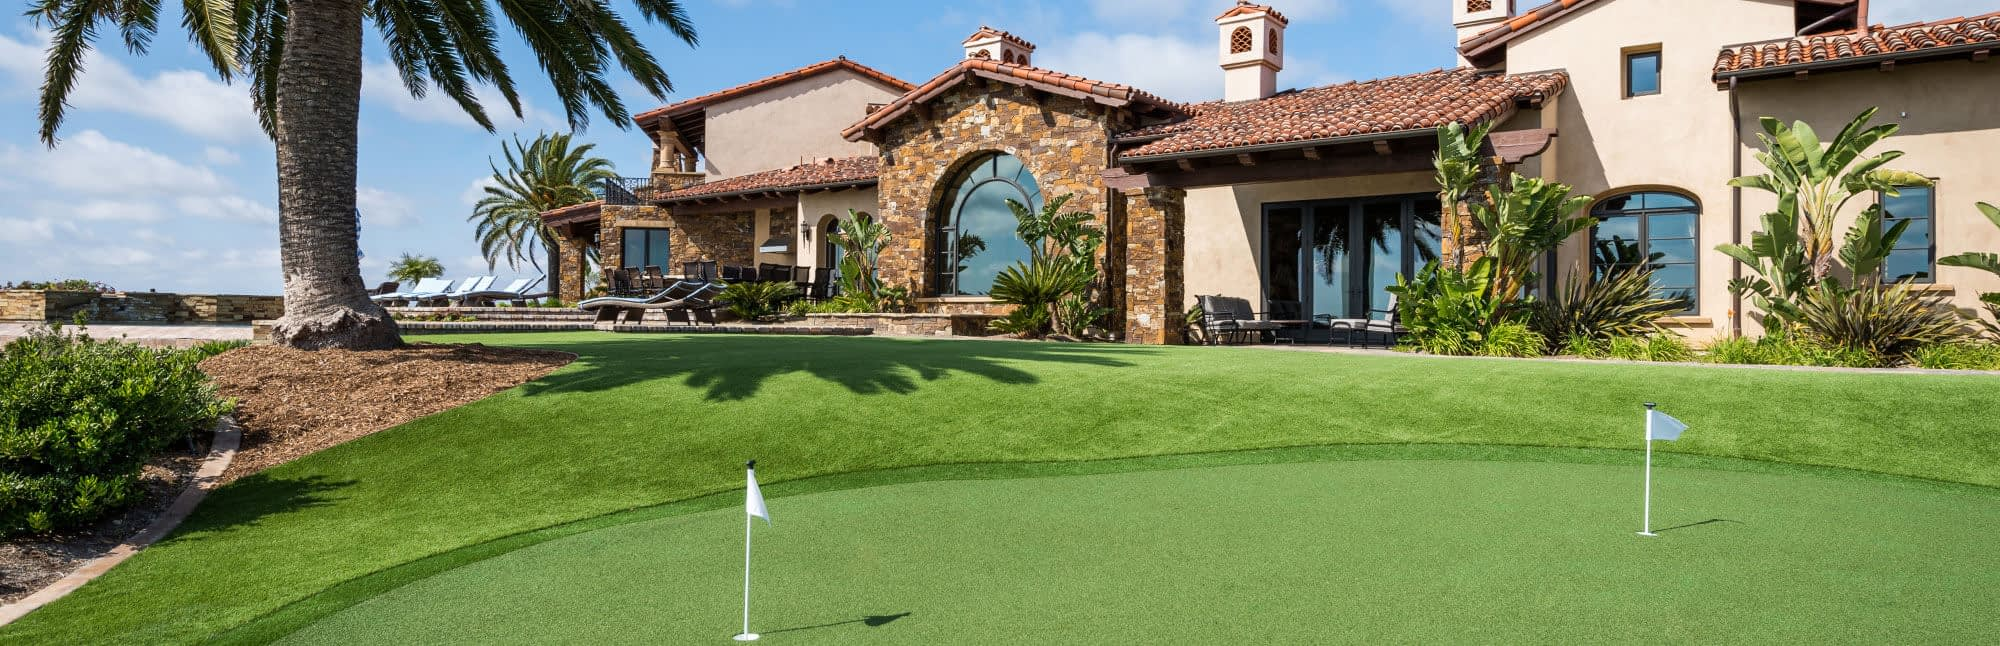 Golf & Residential Turf